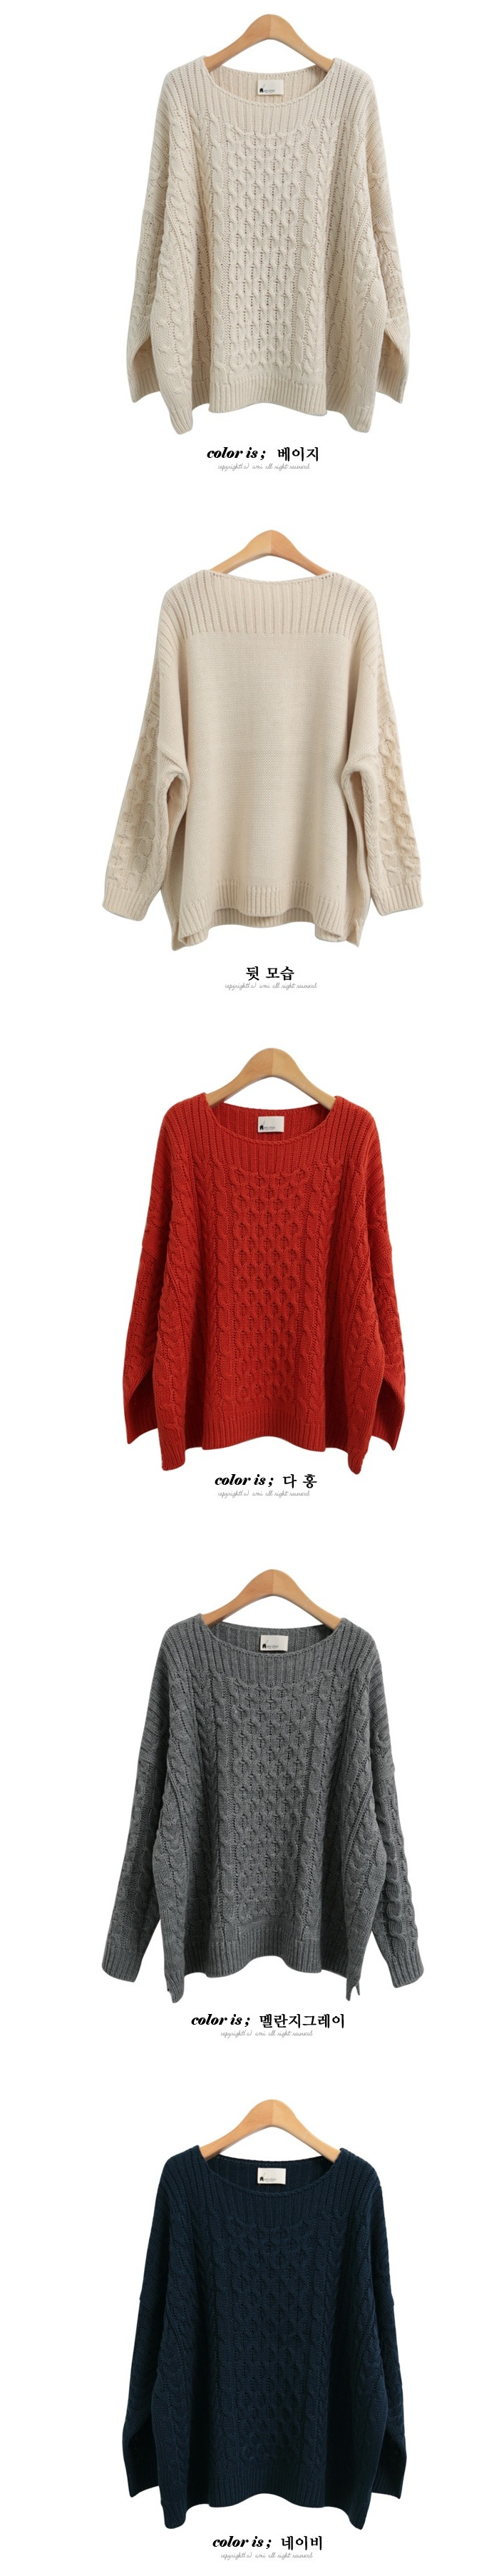 Ami - Parisian knit sweater - 4